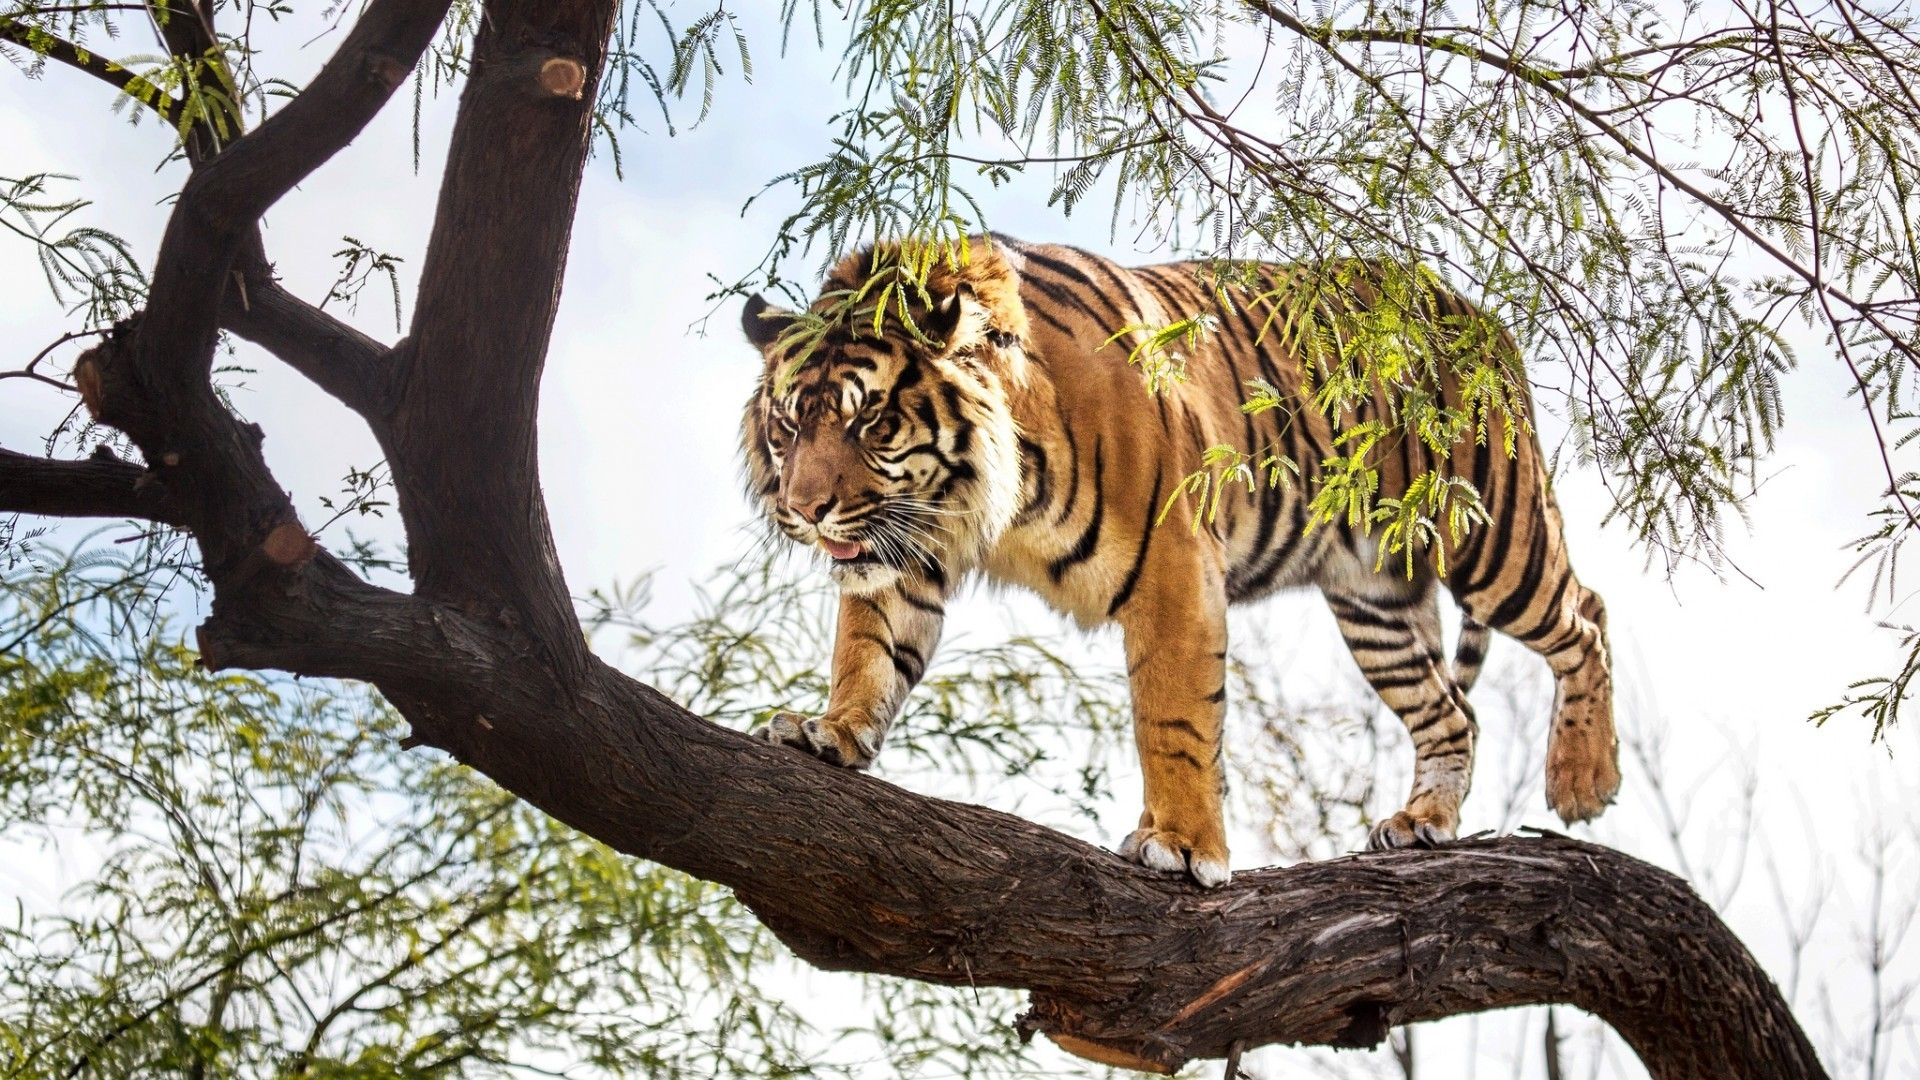 watching tiger on the tree image hd picture photos download